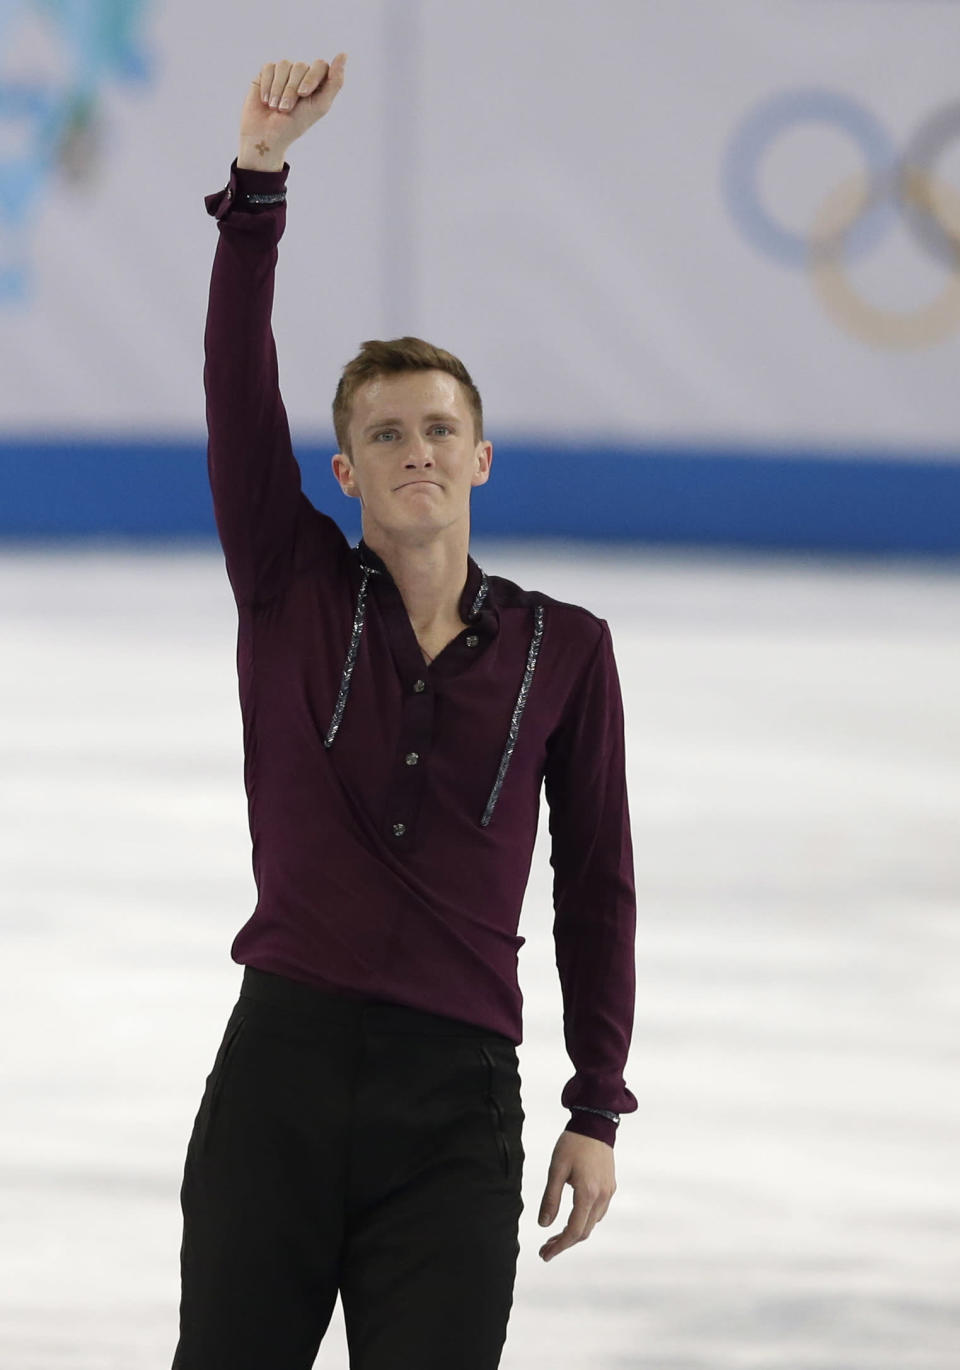 Jeremy Abbott of the United States gestures to the crowd after competing in the men's short program figure skating competition at the Iceberg Skating Palace during the 2014 Winter Olympics, Thursday, Feb. 13, 2014, in Sochi, Russia. (AP Photo/Darron Cummings)